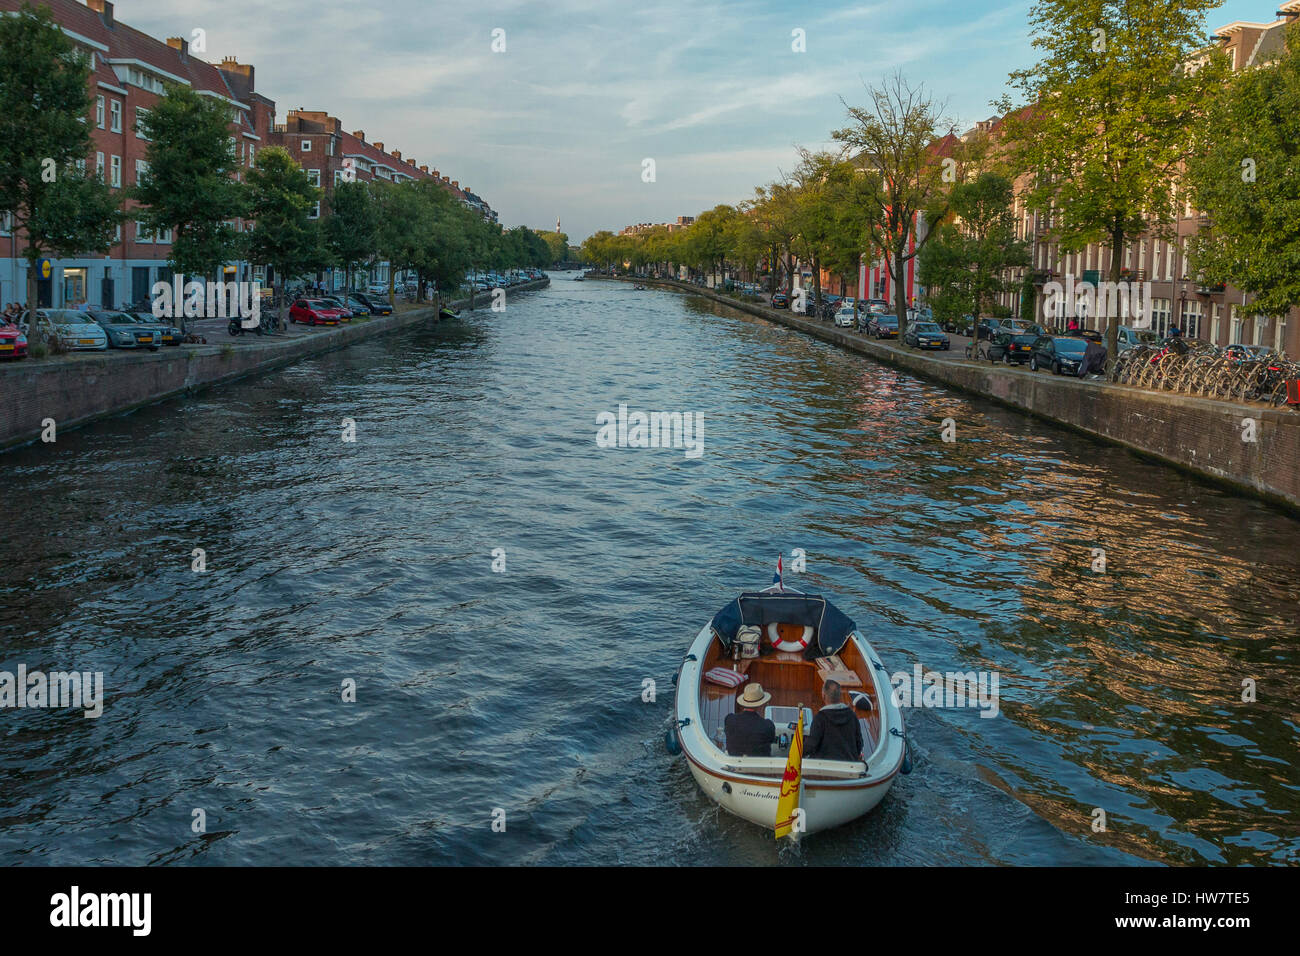 AMSTERDAM, NETHERLANDS- SEPTEMBER 24, 2016: Boaters on Kostverlorenvaart canal around sunset. - Stock Image